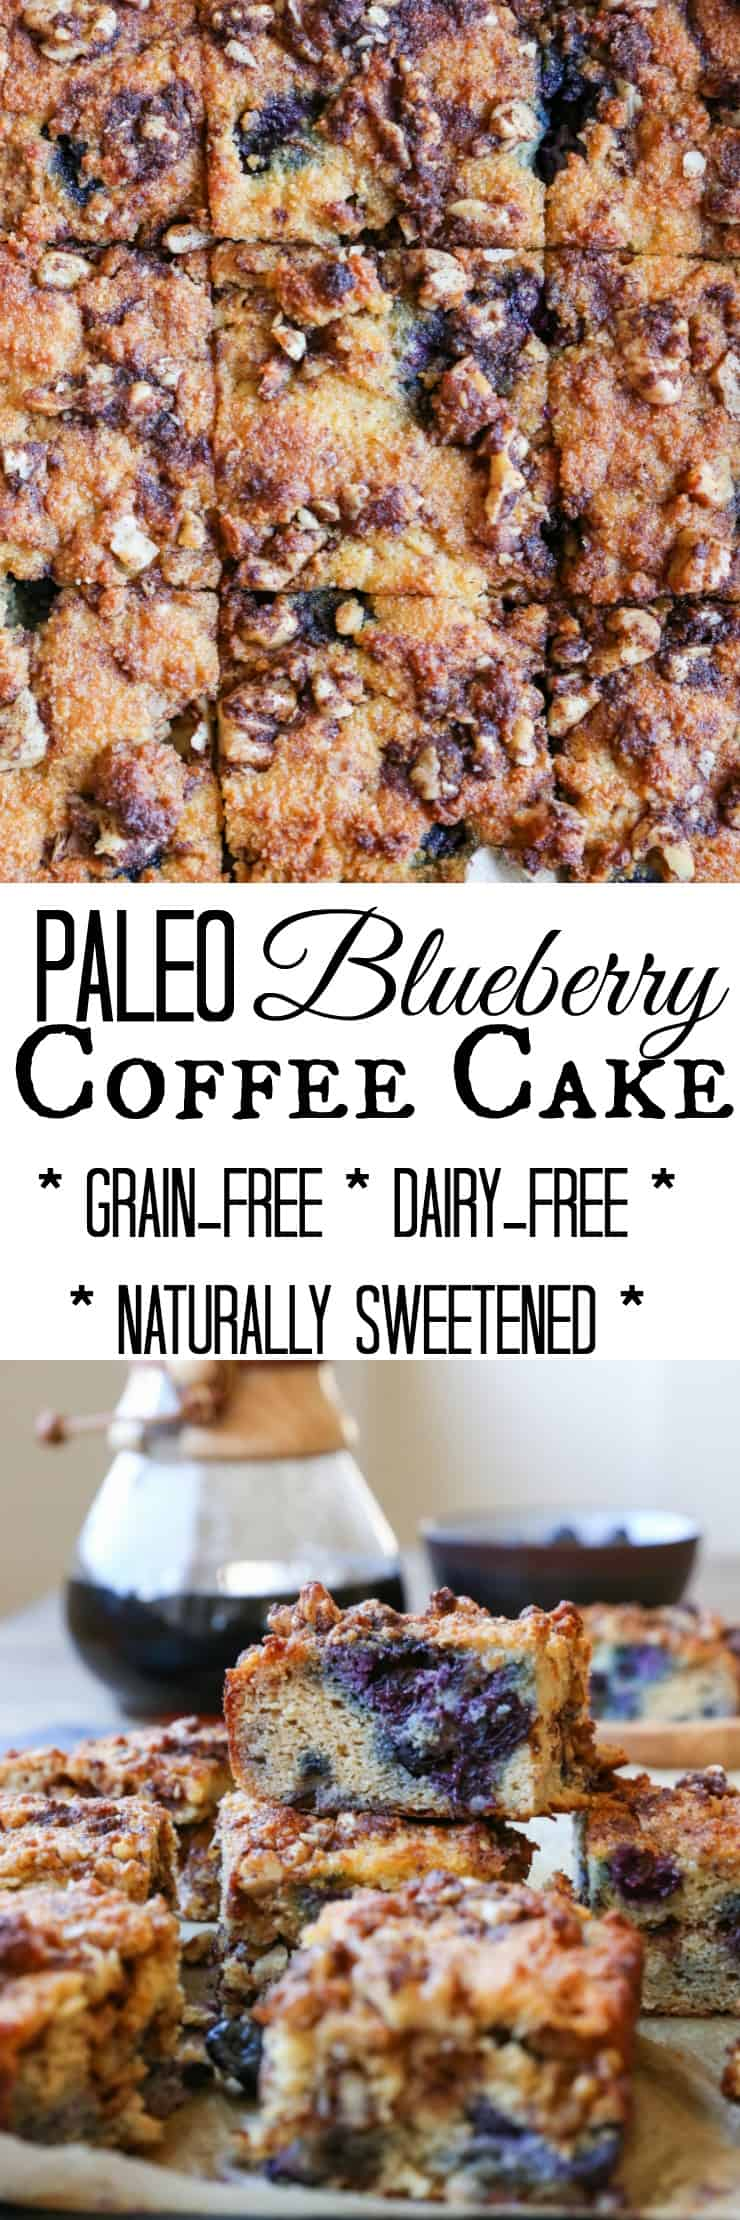 Paleo Blueberry Coffee Cake - a grain-free, refined sugar-free, dairy-free version of the classic breakfast cake. Only takes a few minutes to prepare in your blender!